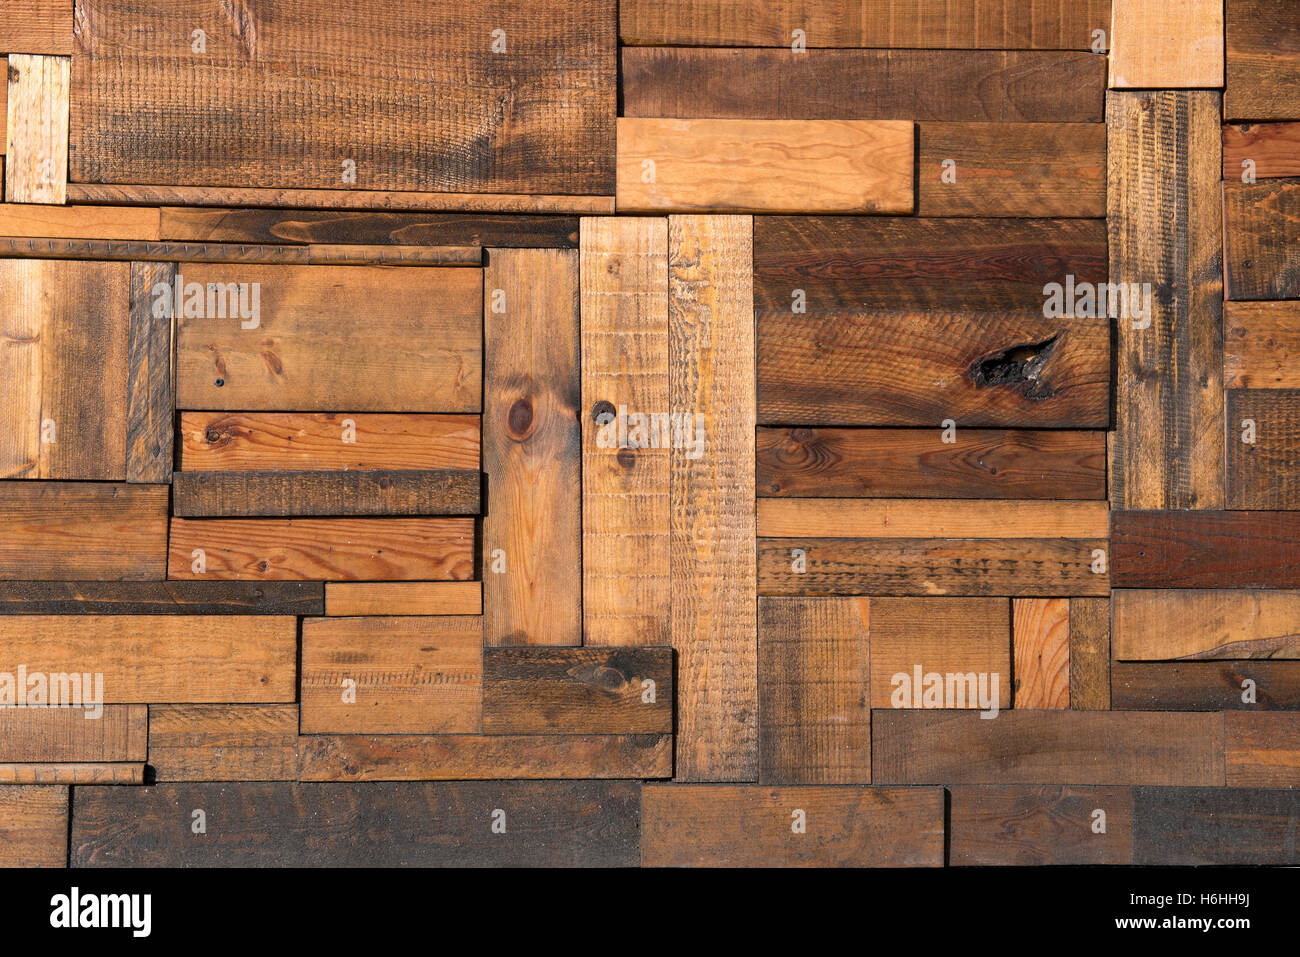 Background created from overhead view of floor composed of aged wooden planks - Stock Image